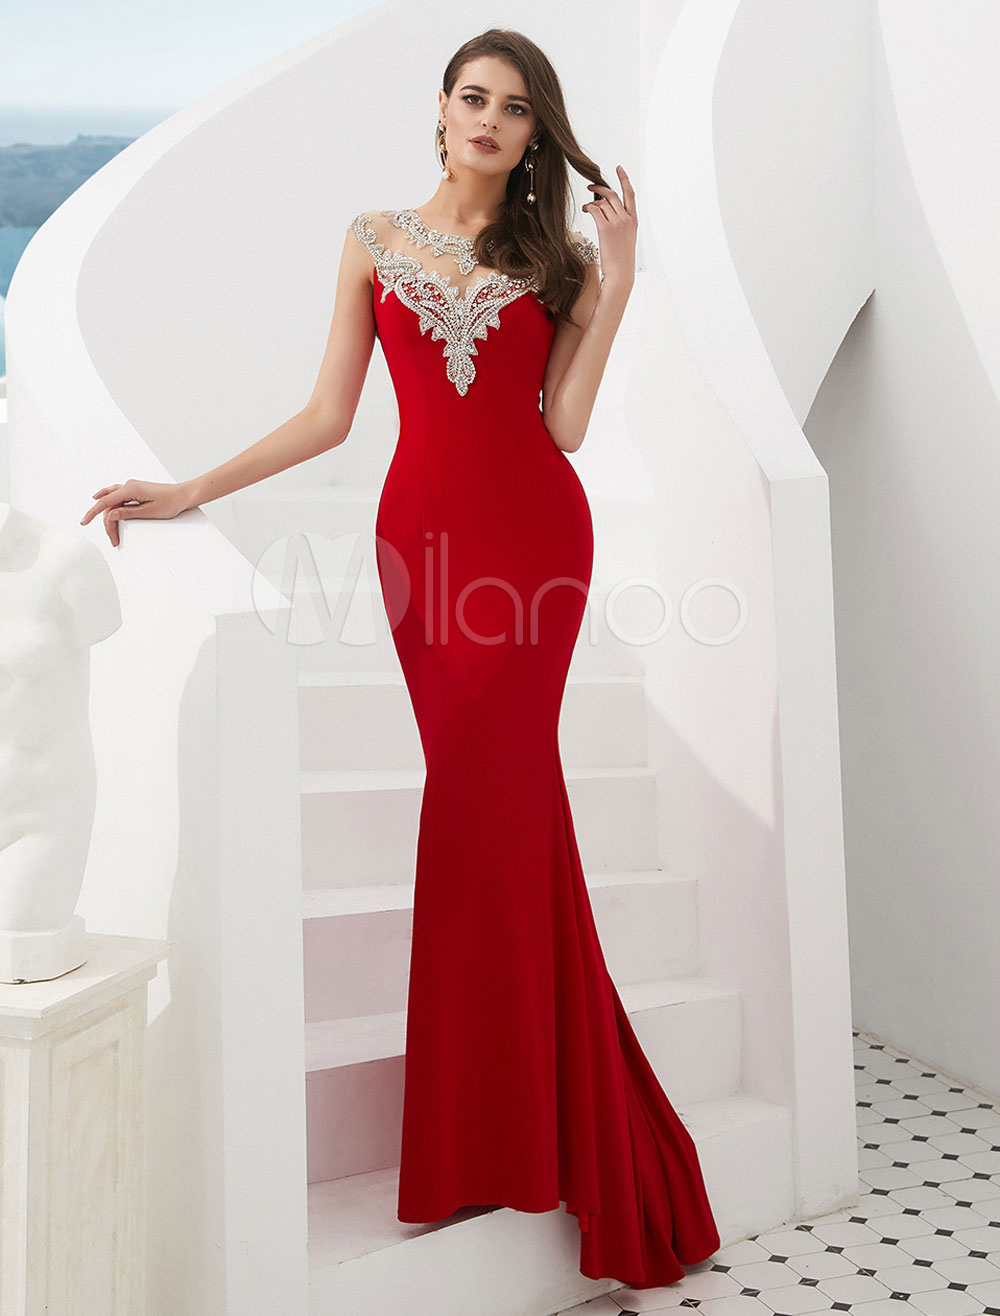 numerosi in varietà stile limitato calzature Abiti da sera rossi Mermaid Luxury Cutout Beaded Sleeveless Gowns formali  con il treno